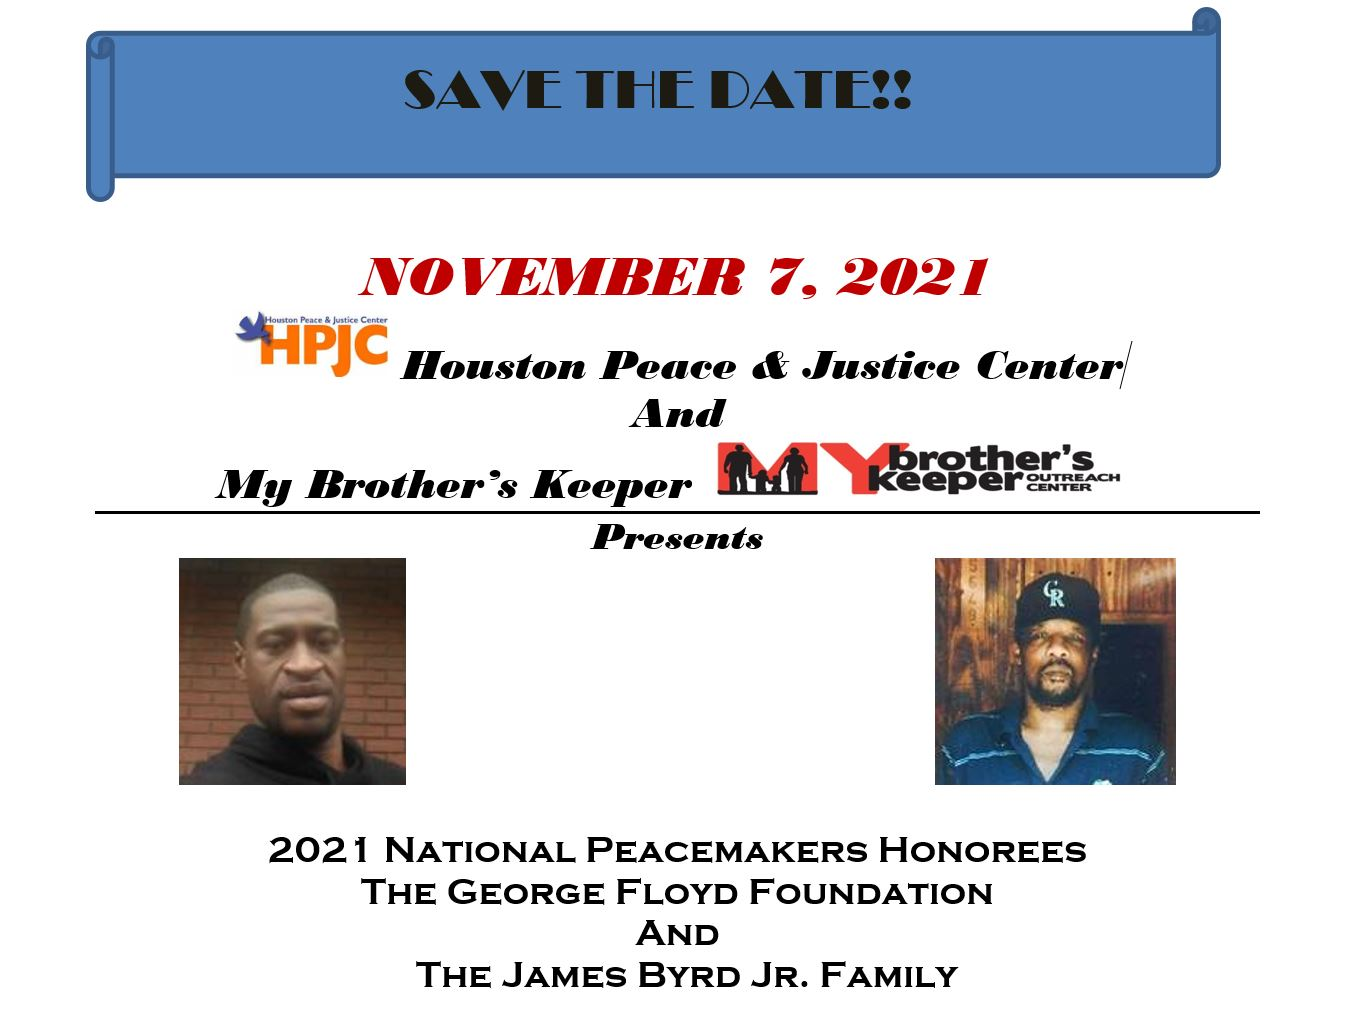 2021 National Peacemakers Honorees The George Floyd Foundation & The James Byrd Jr. Family